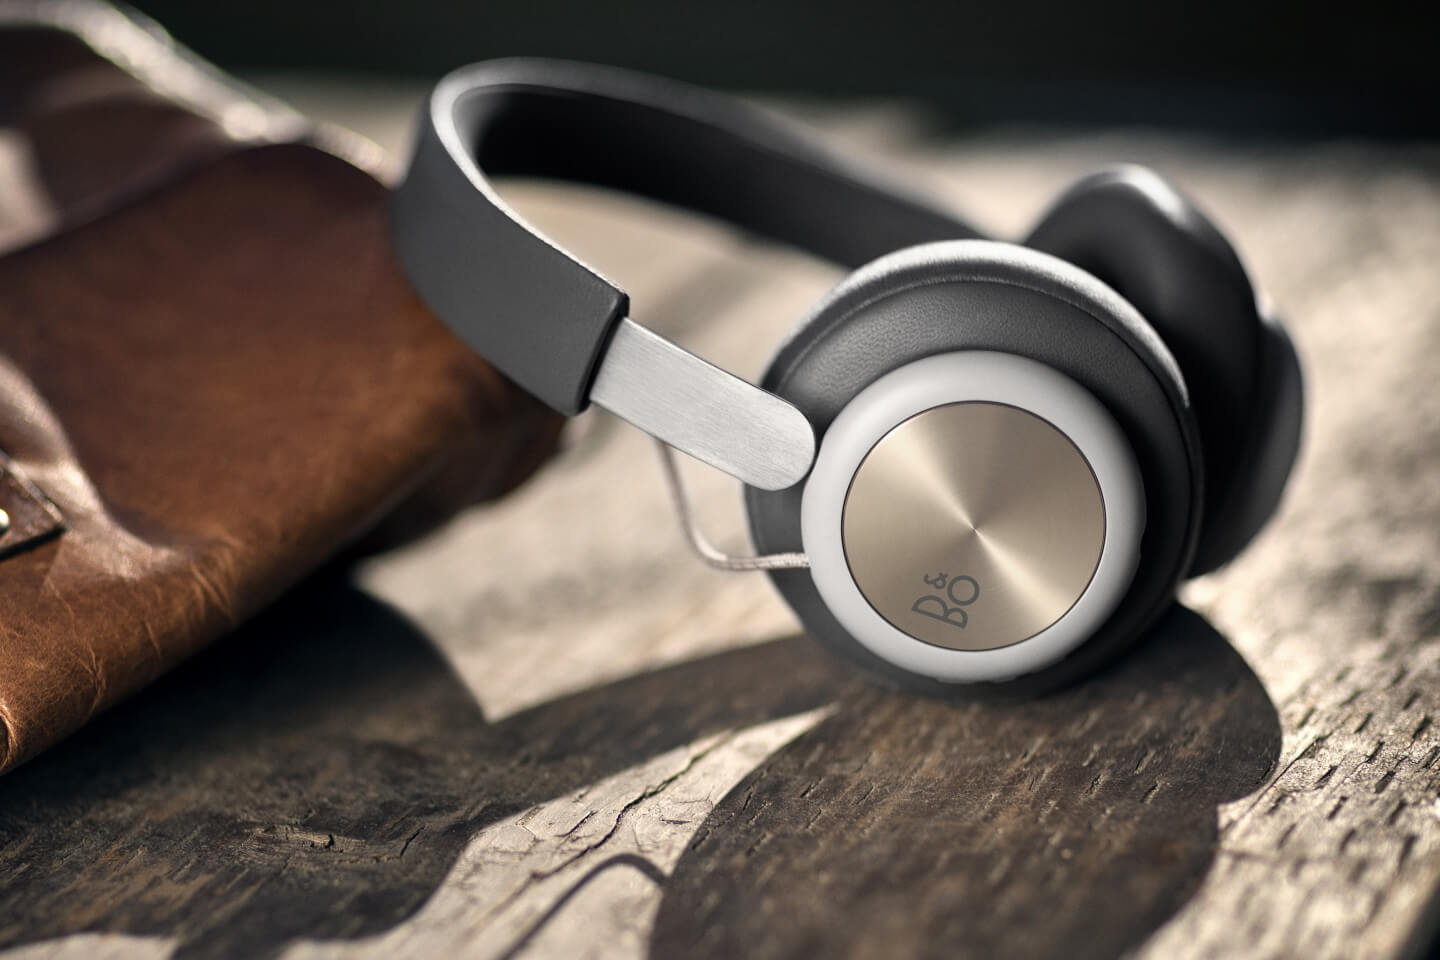 BeoPLay H4 clear design and minimalist expression.